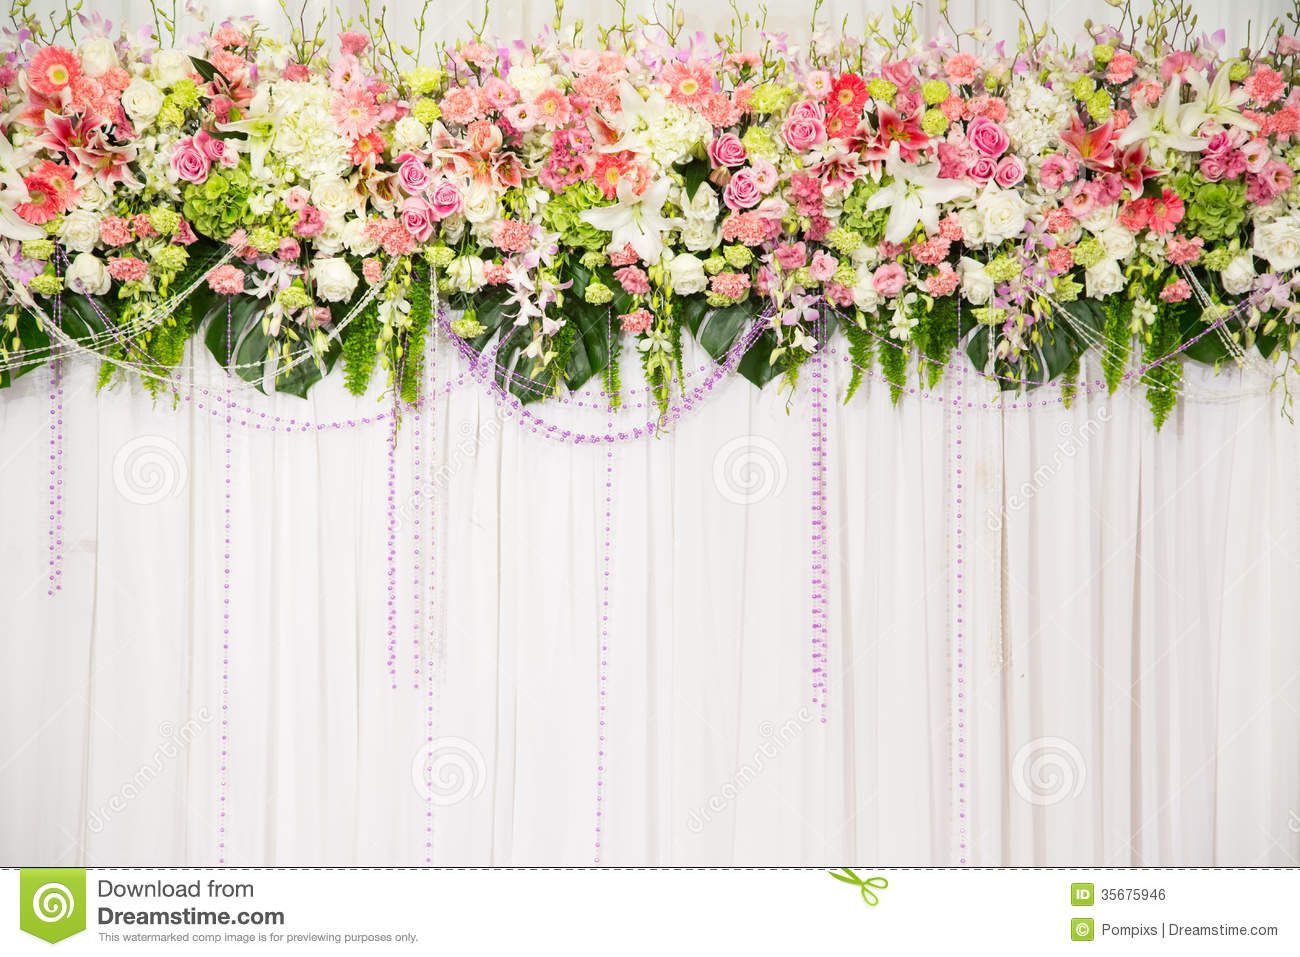 Wedding flower backgrounds wallpapersafari for Background decoration for wedding